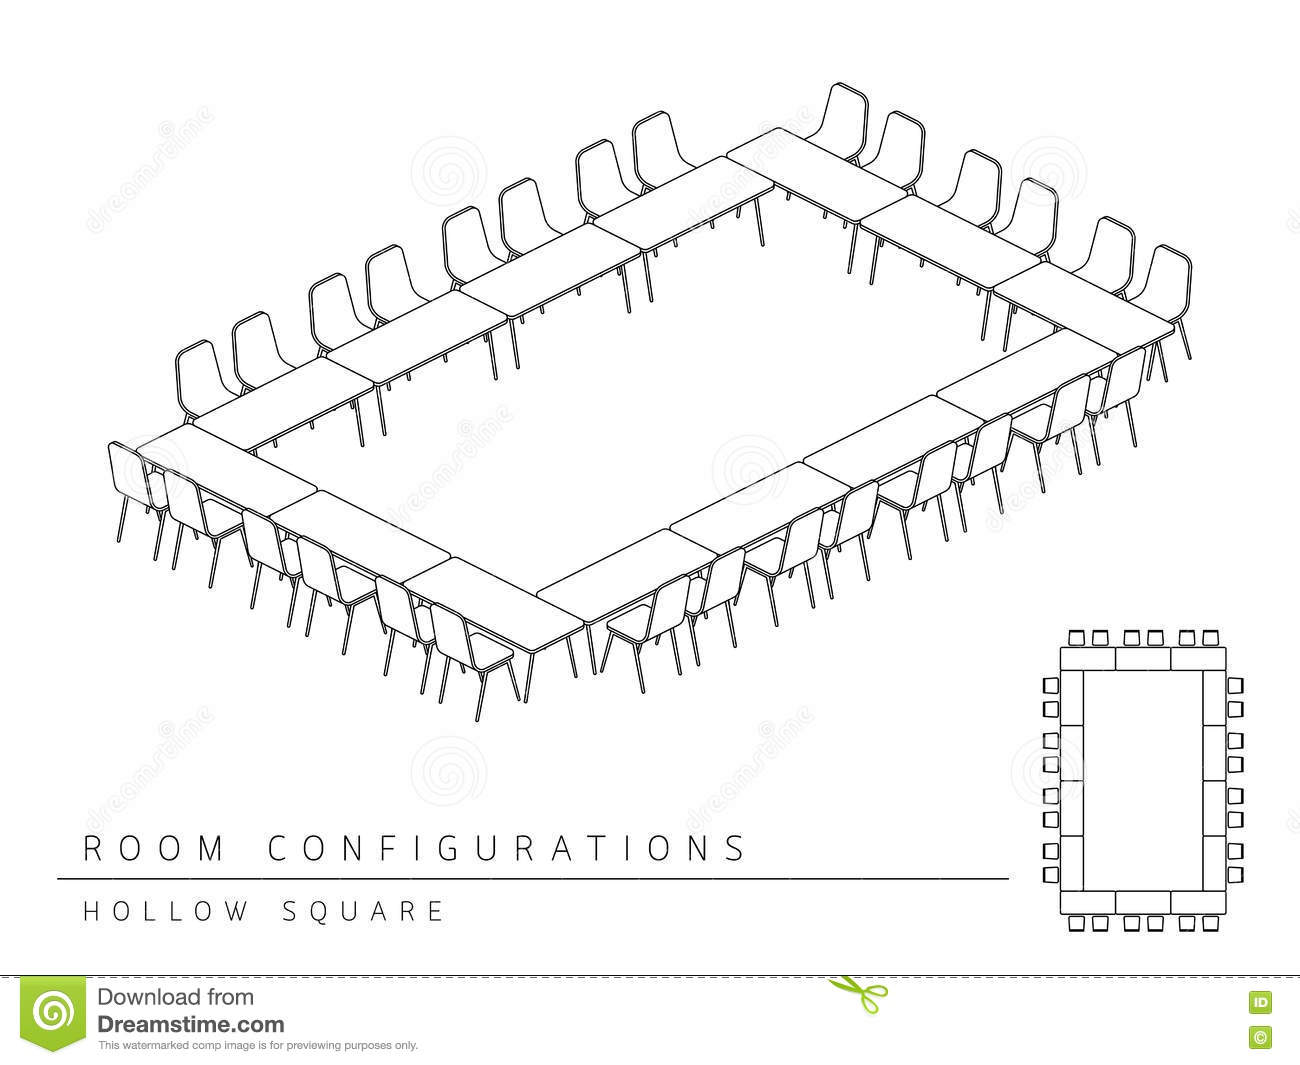 hight resolution of meeting room setup layout configuration hollow square style per